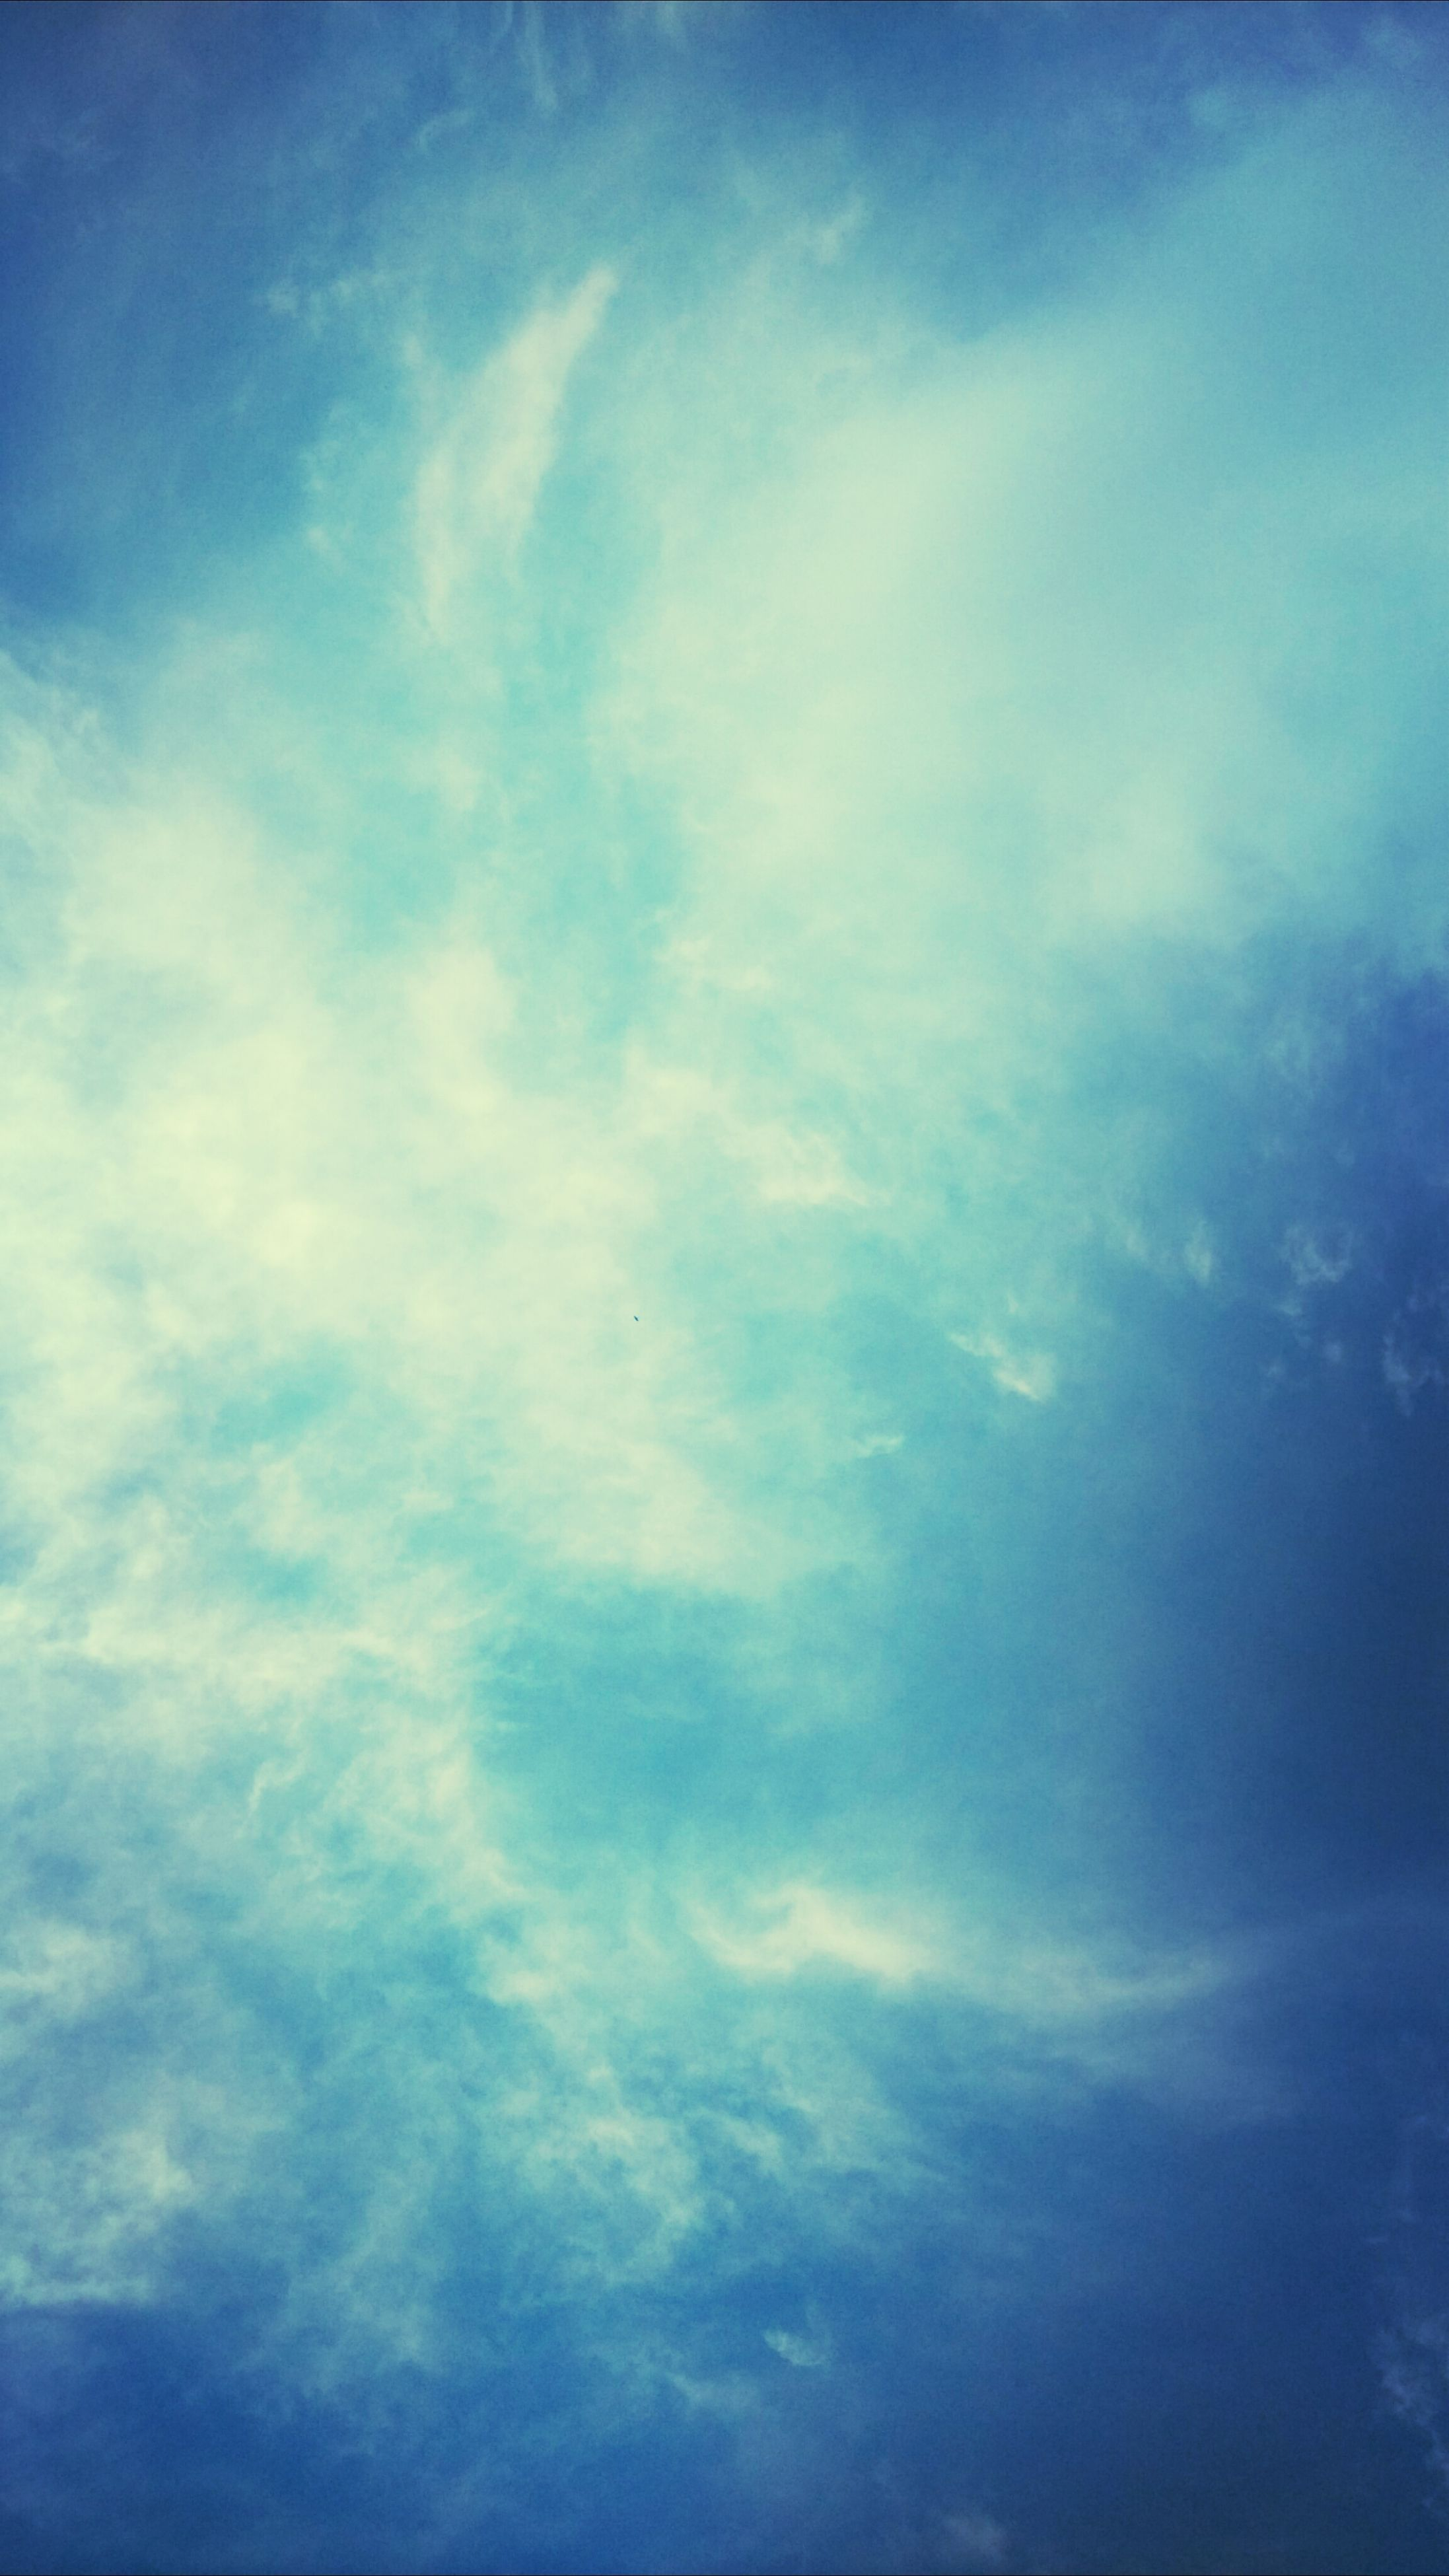 sky, low angle view, blue, cloud - sky, beauty in nature, tranquility, scenics, sky only, nature, cloudy, tranquil scene, backgrounds, cloud, cloudscape, full frame, idyllic, outdoors, no people, day, weather